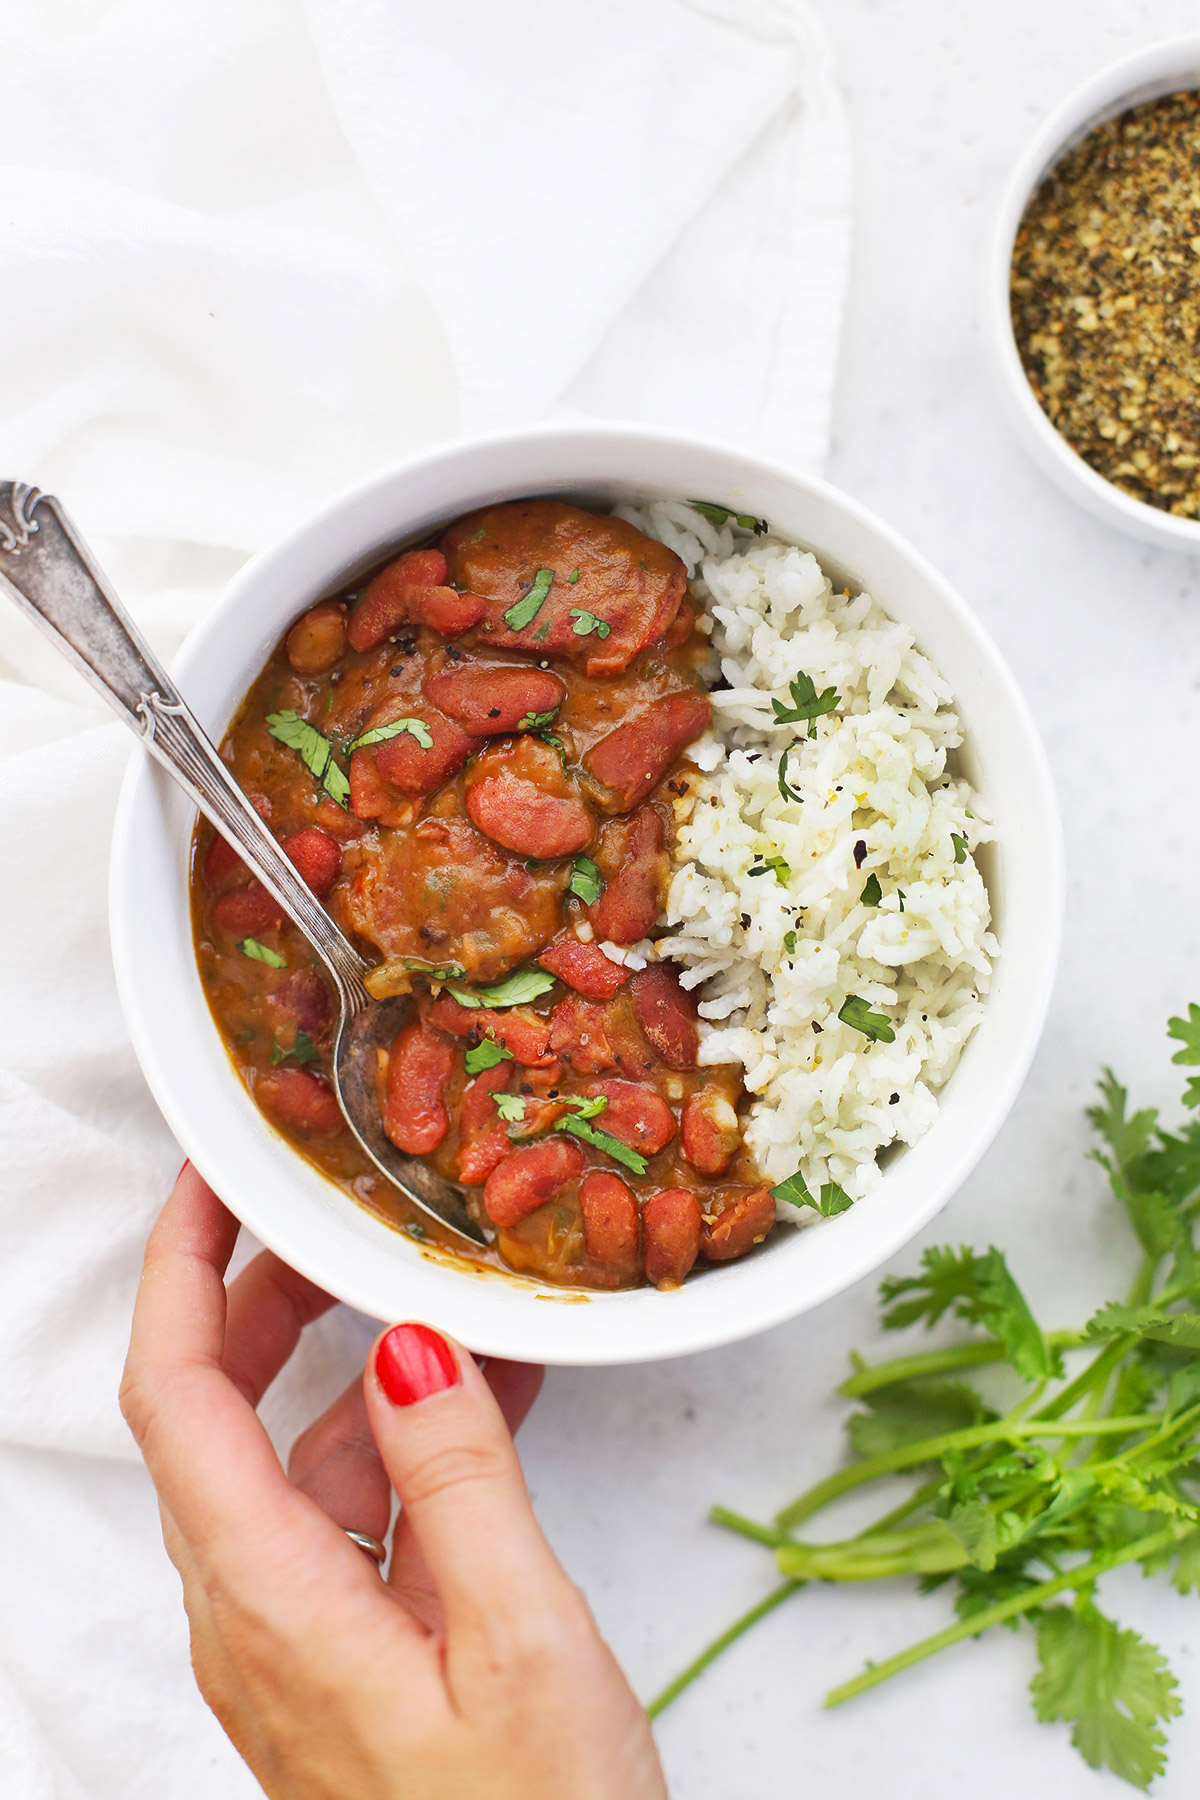 Serving Instant Pot Red Beans and Rice in a bowl garnished with fresh herbs